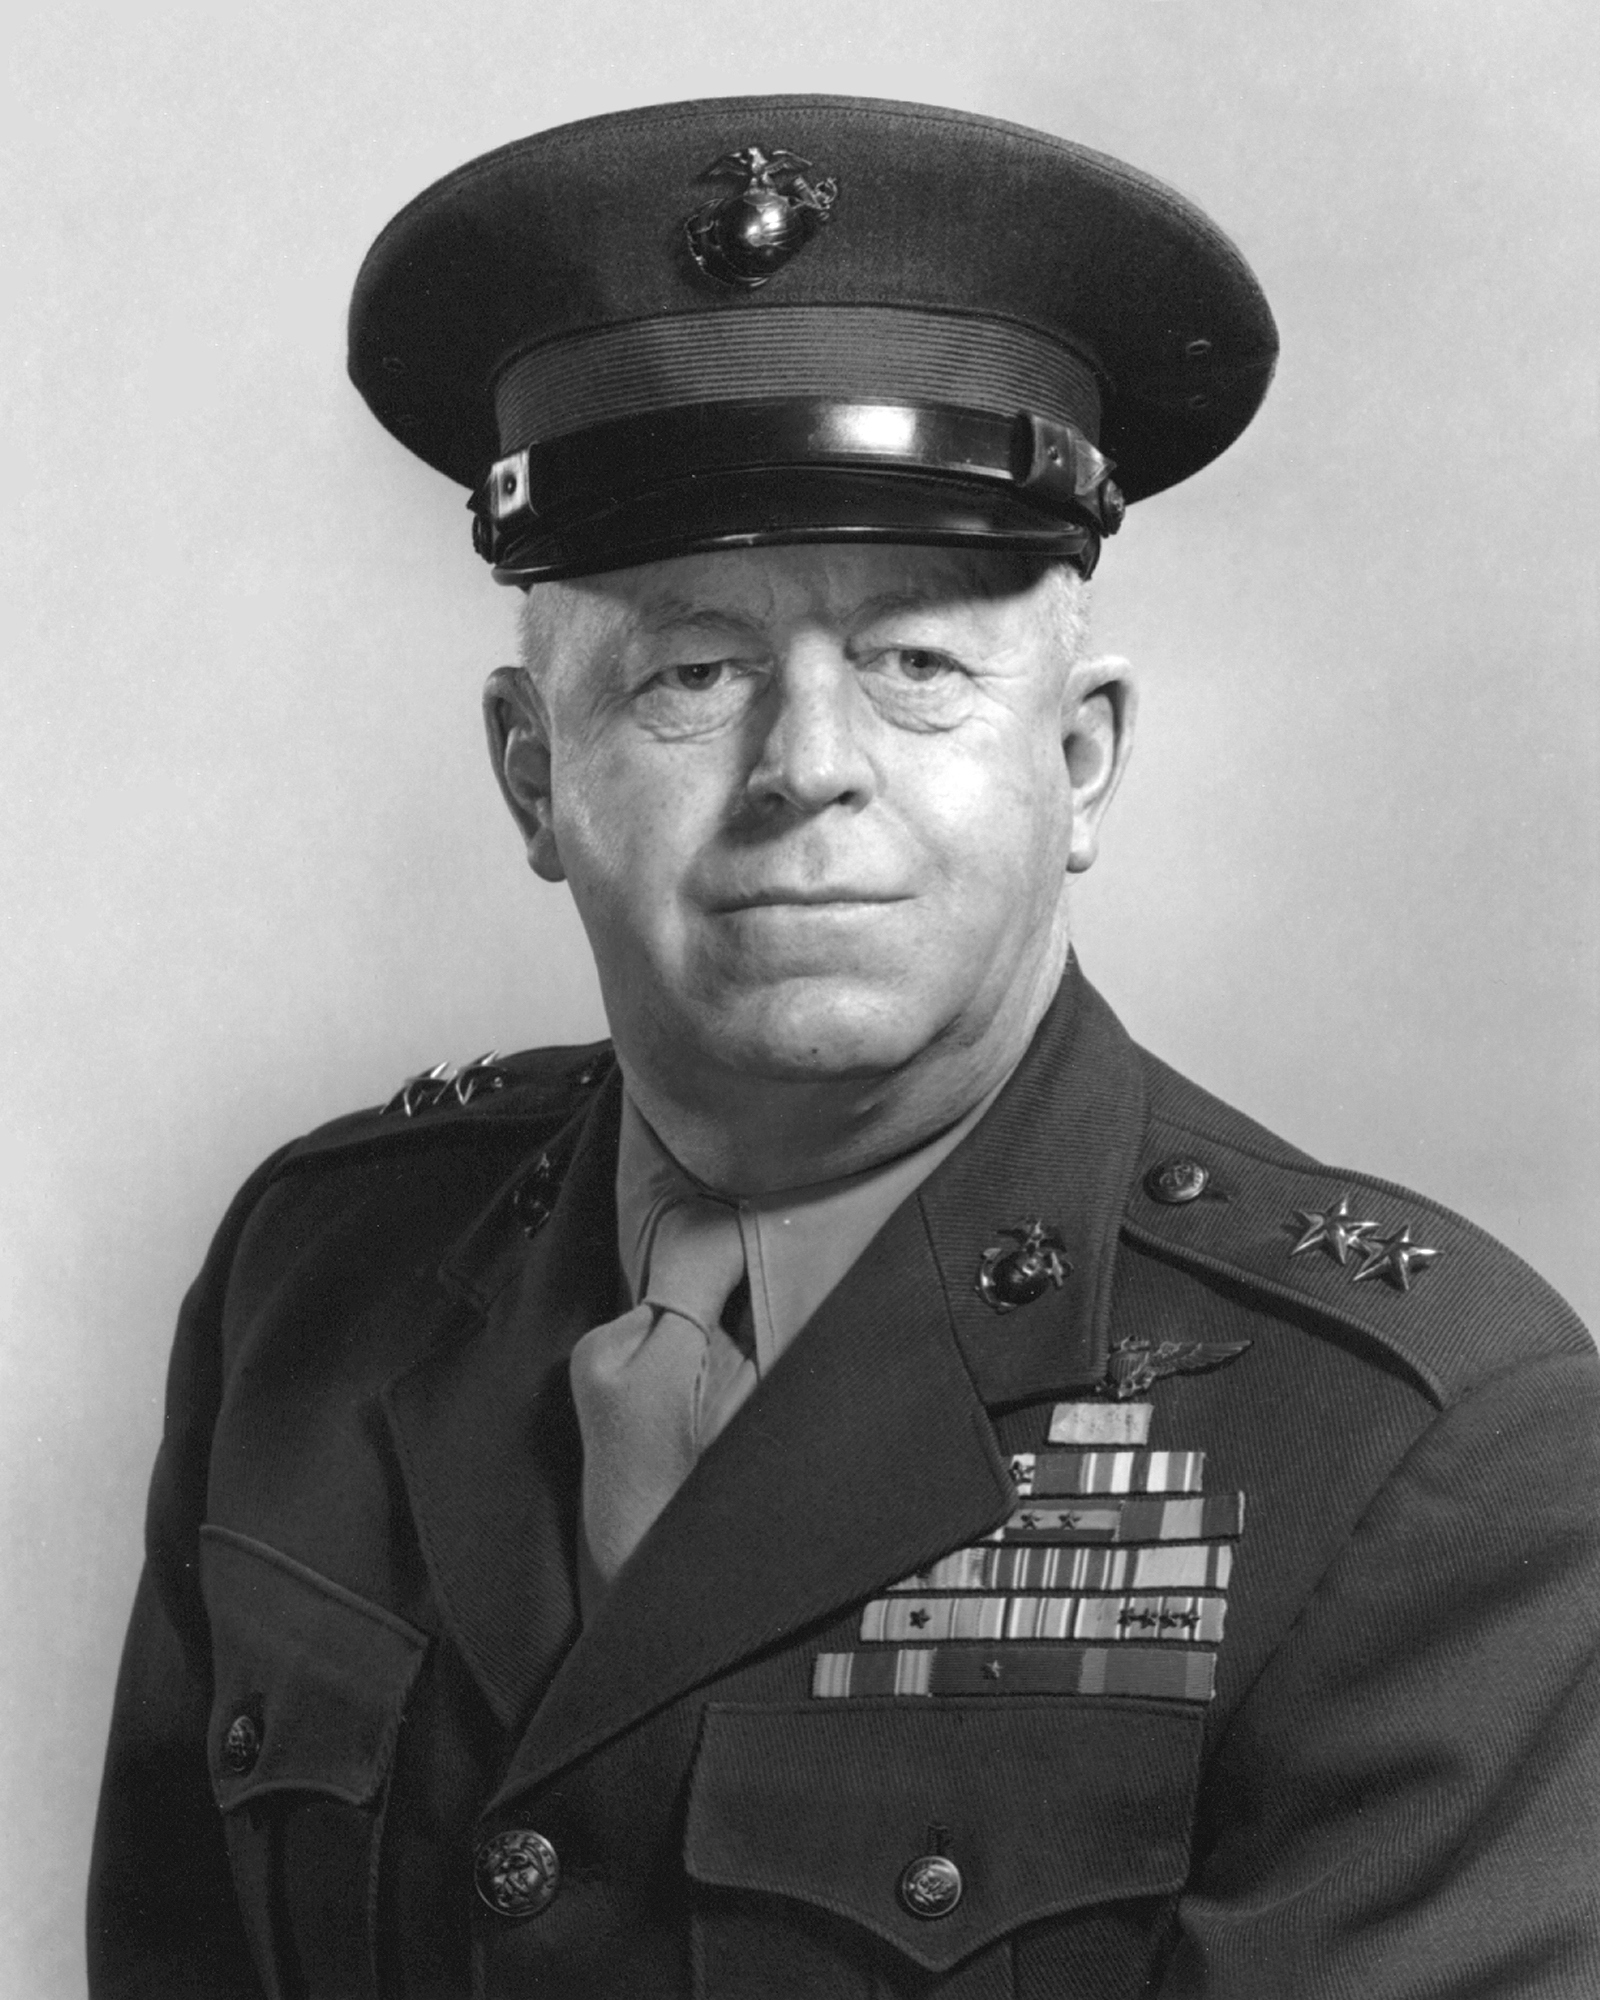 U.S. Marine Lieutenant Colonel Merritt A. Edson (here photographed as a major general) who led Marine forces in the Battle of Edson's Ridge.